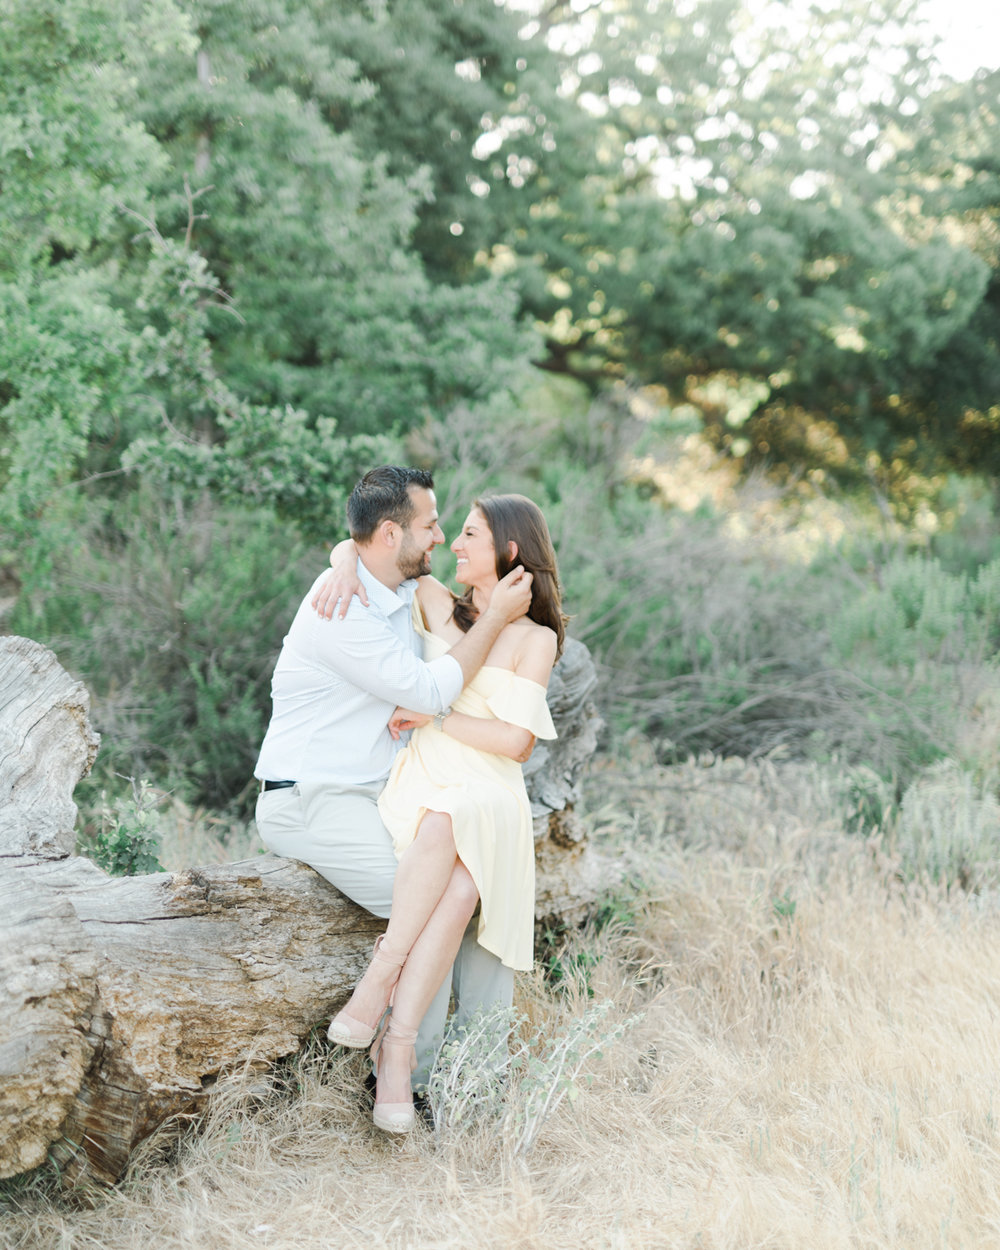 a&a_malibu_creek_state_park_engagement_session_los_angeles_fine_art_wedding_photographer-23.jpg